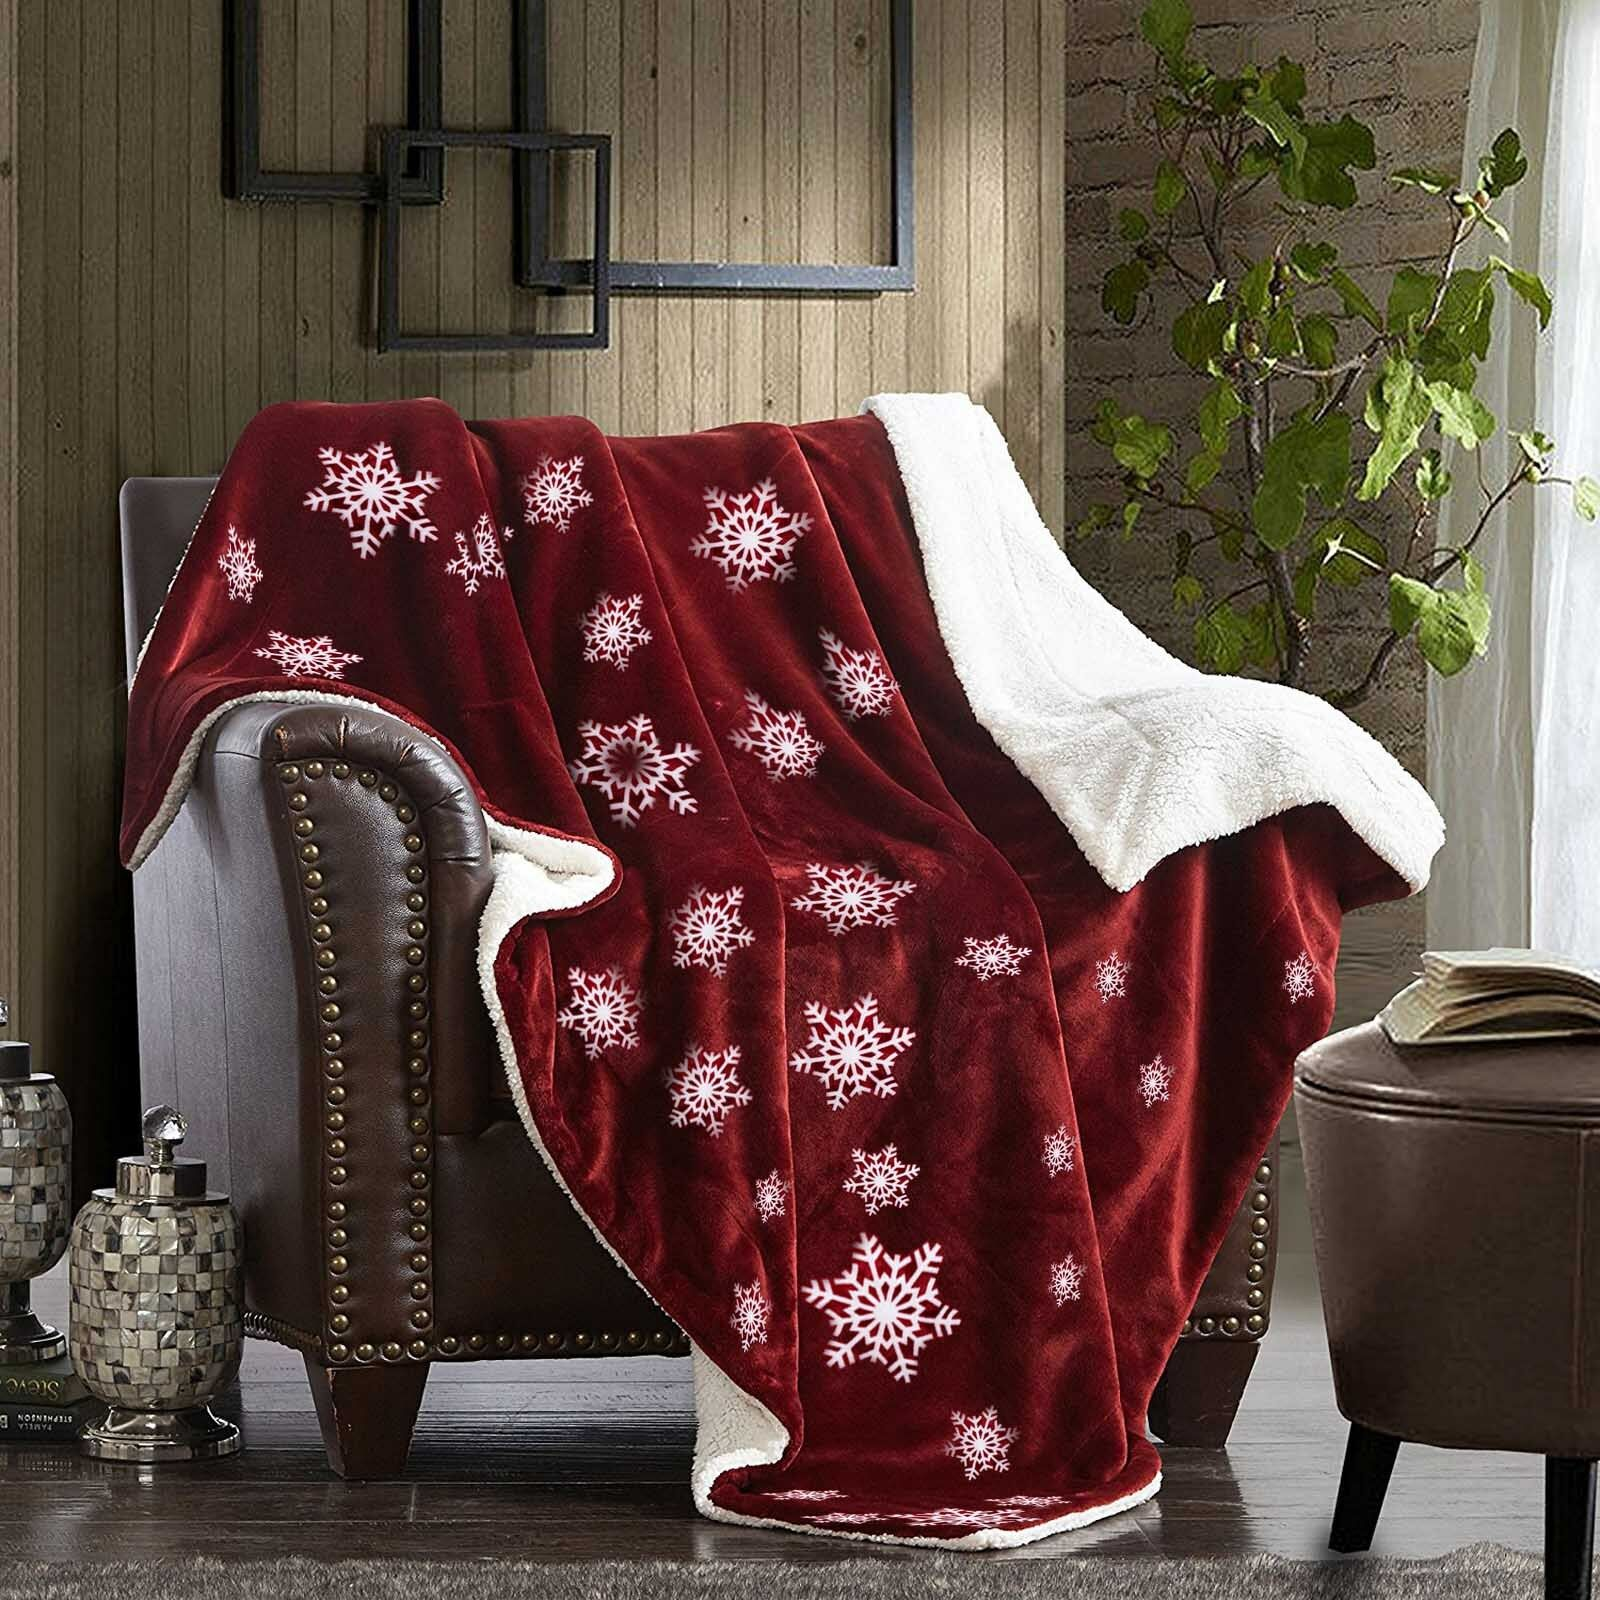 Christmas Blanket Decoration Snowflake Throw Blanket Red and White 59 x79